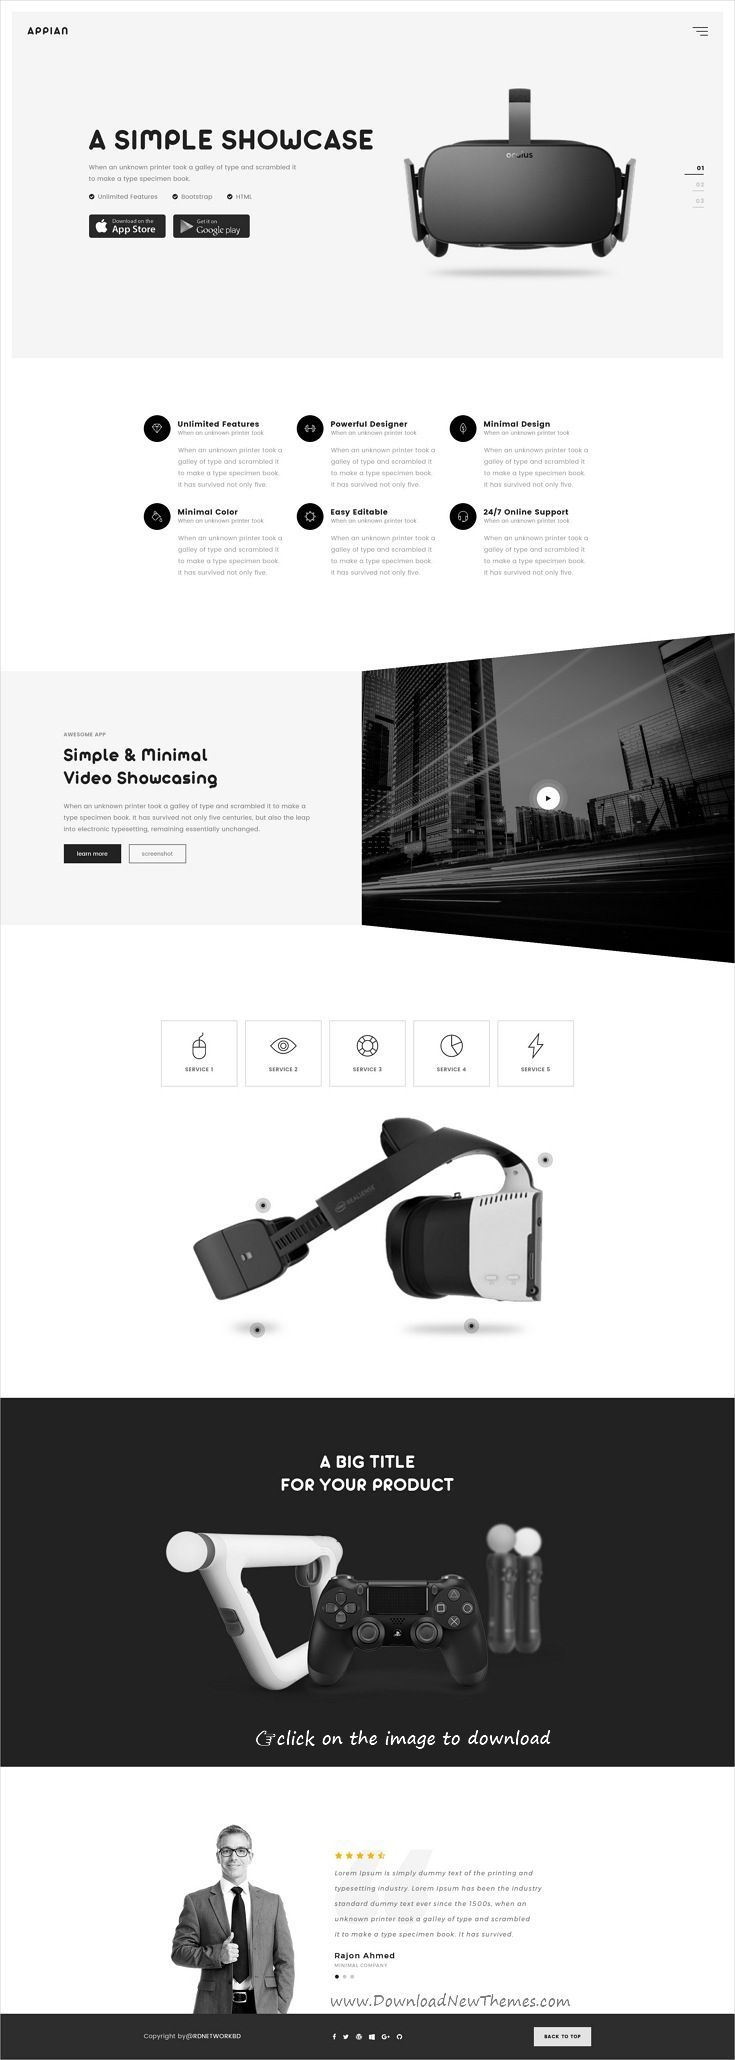 Appian is clean and modern design PSD template for app #and #product #landingpage website with 13 layered PSD pages to download 👉click on image.